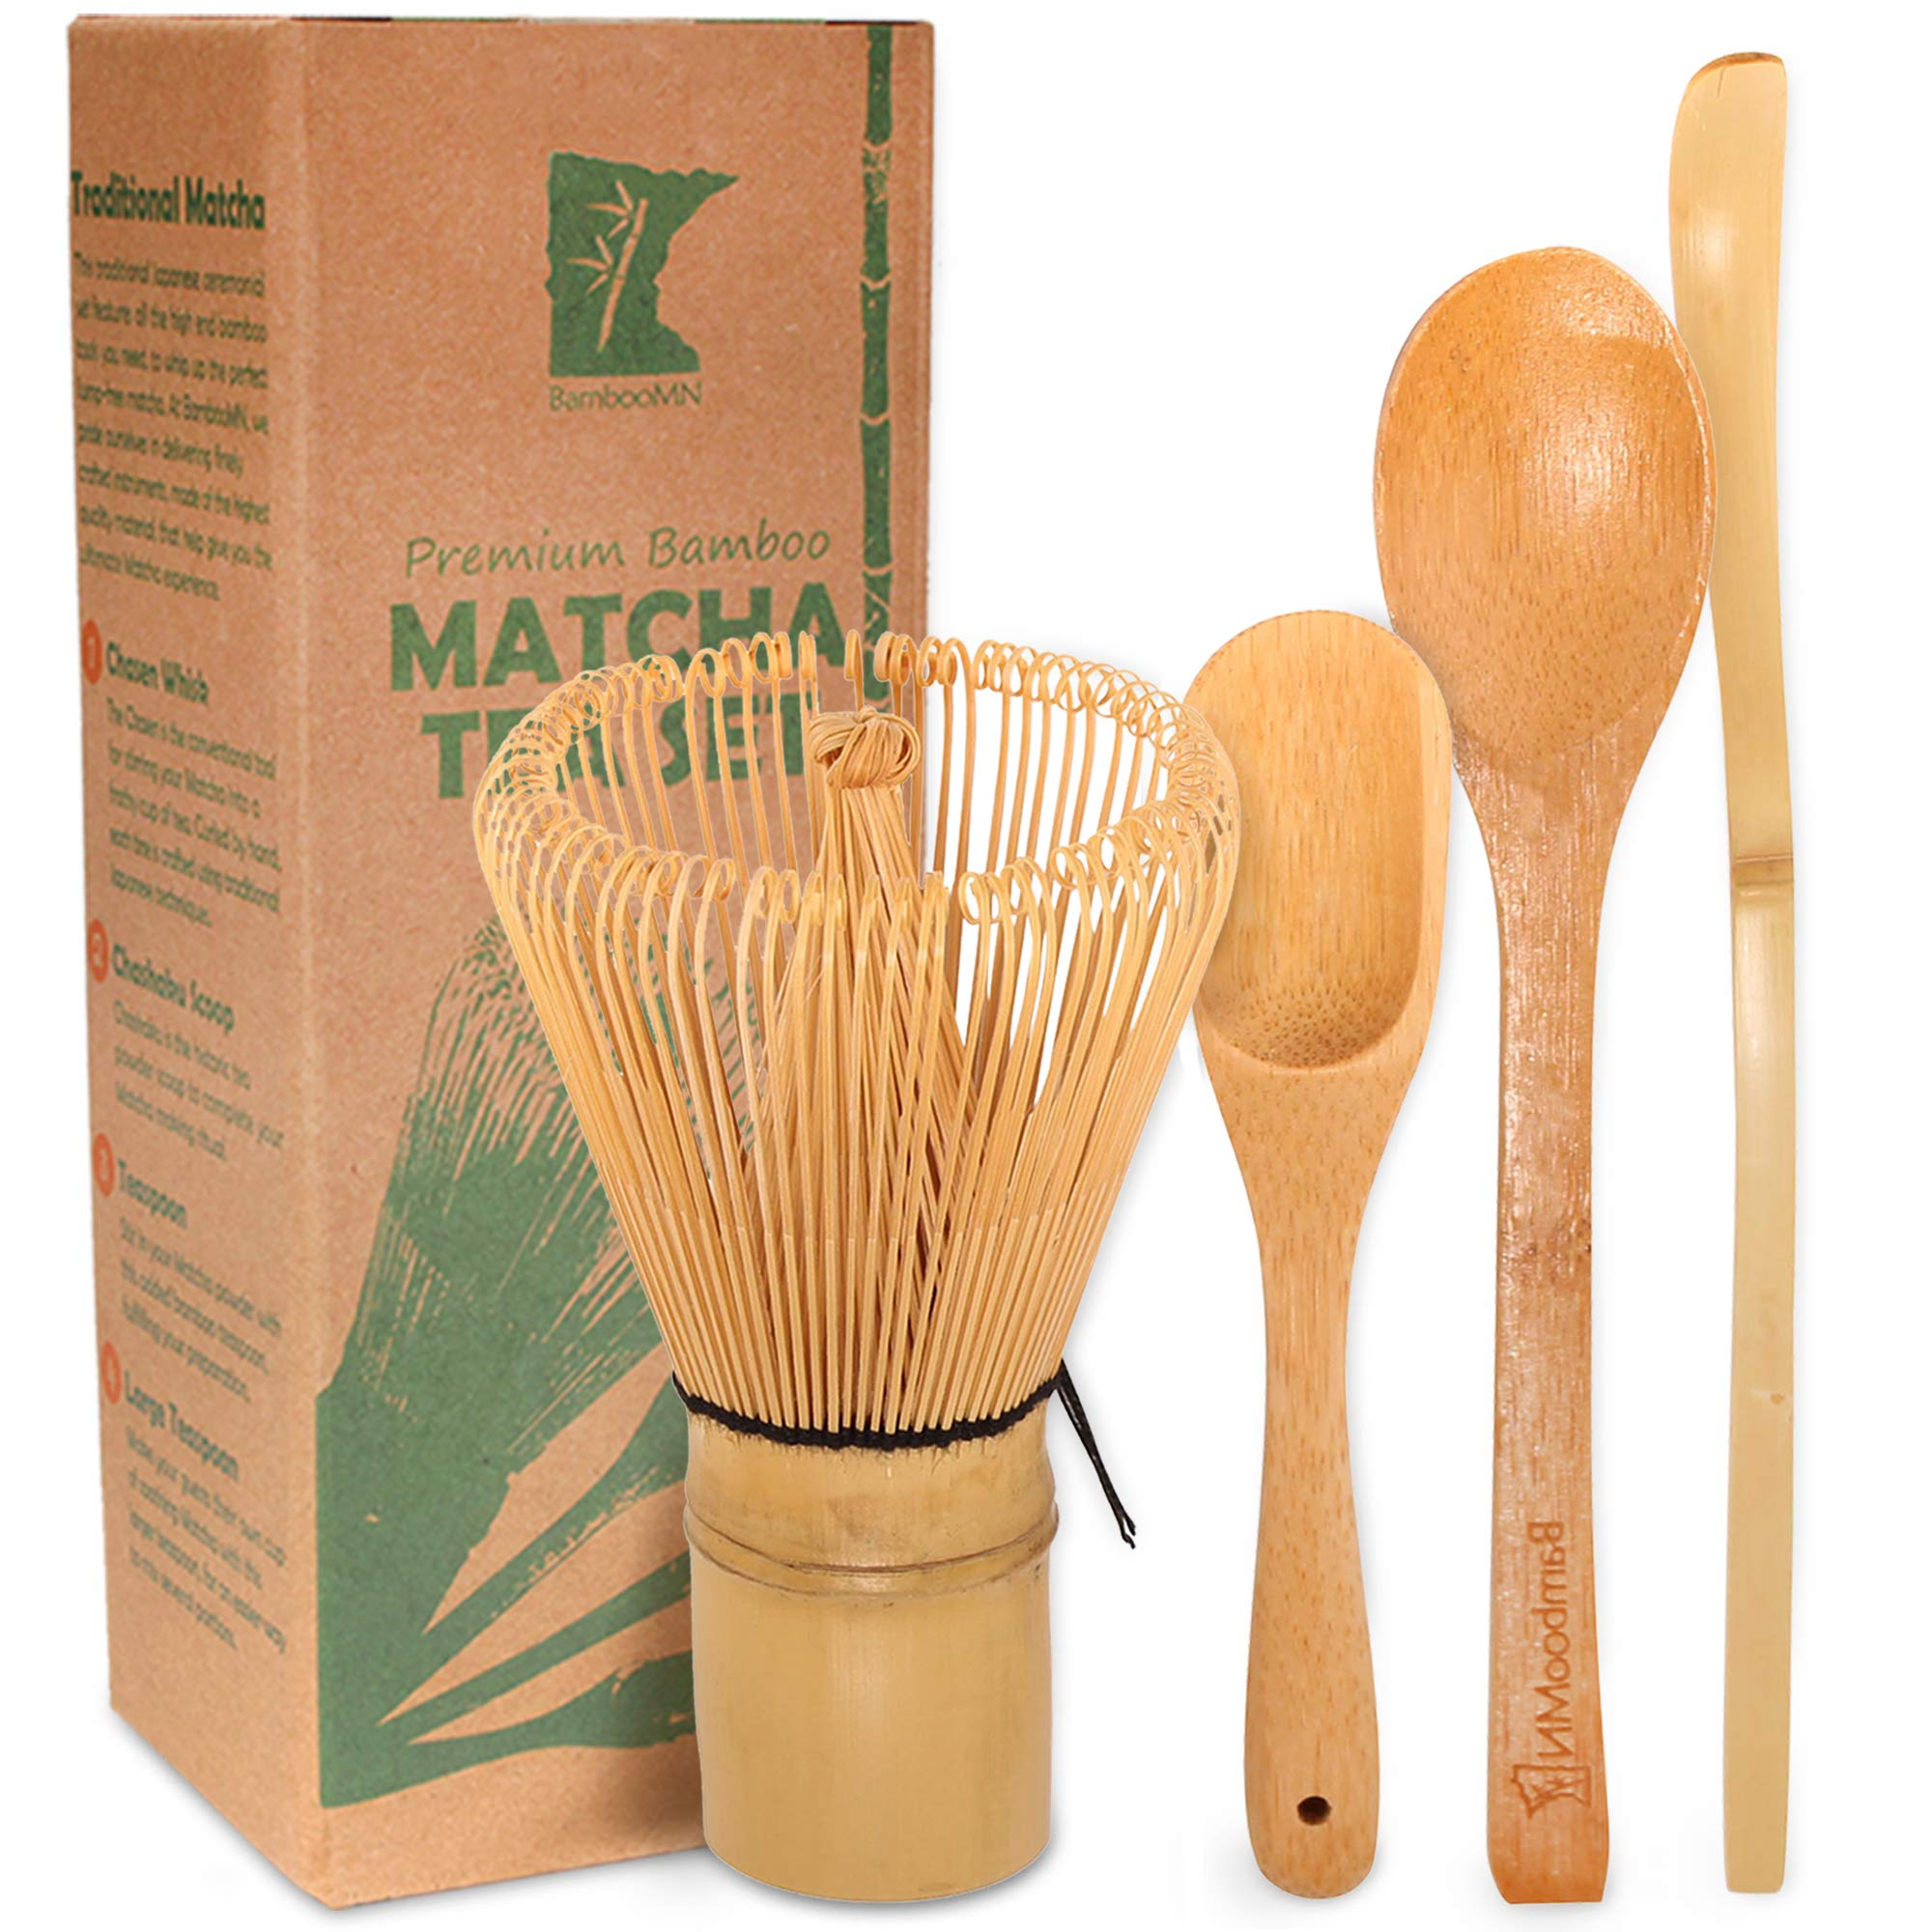 BambooMN Matcha Whisk Set - Golden Chasen (Tea Whisk) + Chashaku (Hooked Bamboo Scoop) + Tea Spoon - 1 Set - Premium Matcha Set to Prepare a Traditional Cup of Matcha